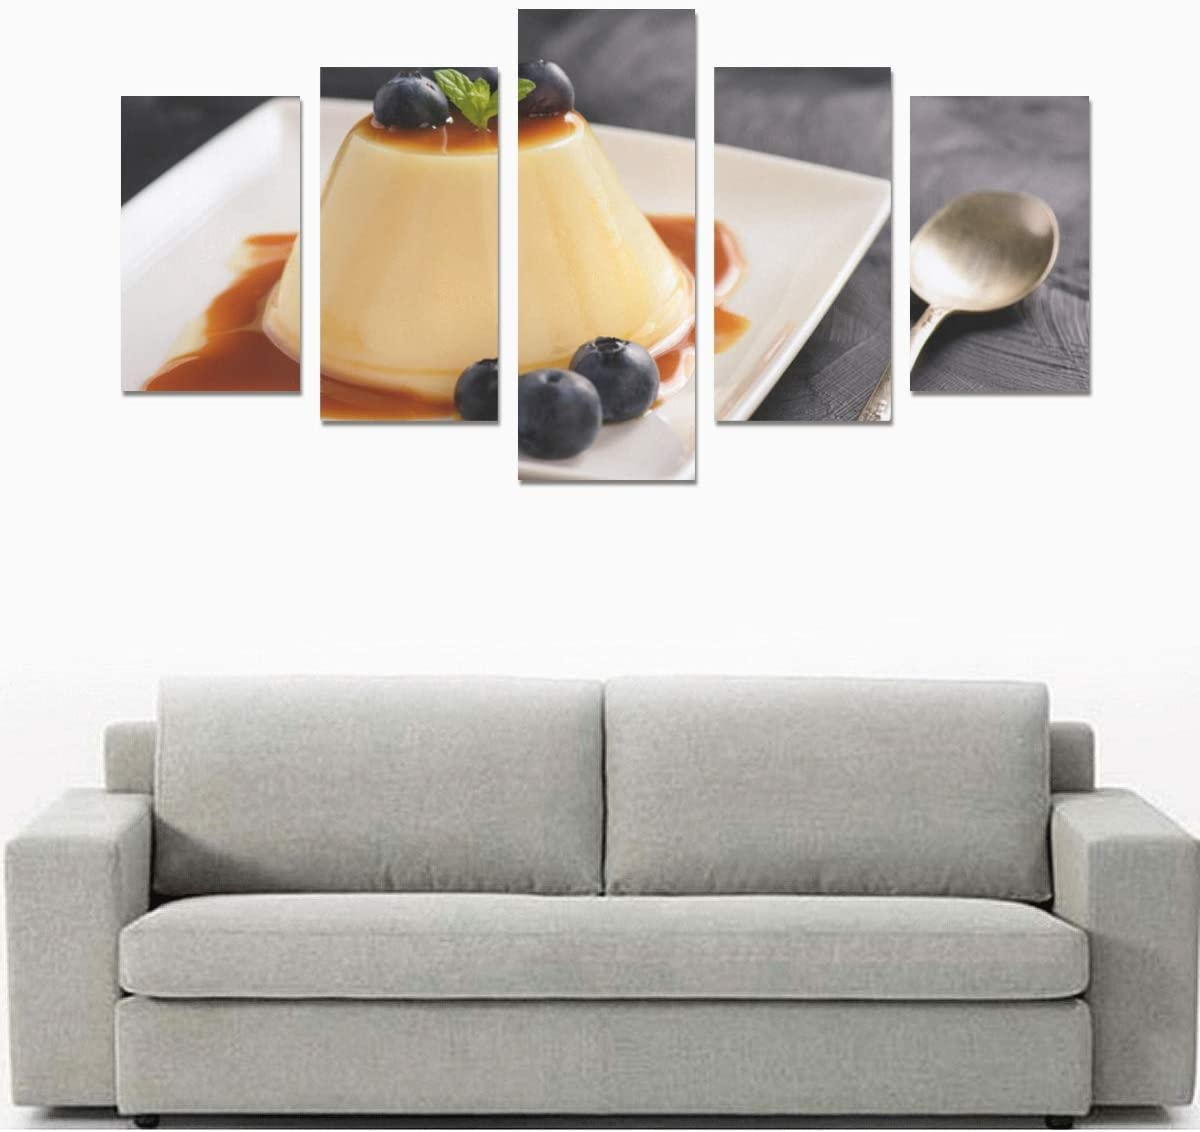 Amazon Com Homemade Caramel Custard Pudding No Frame Canvas Print Sets Wall Art Picture 5 Pieces Paintings Posters Prints Photo Image On Canvas Ready To Hang For Living Room Bedroom Home Office Wall